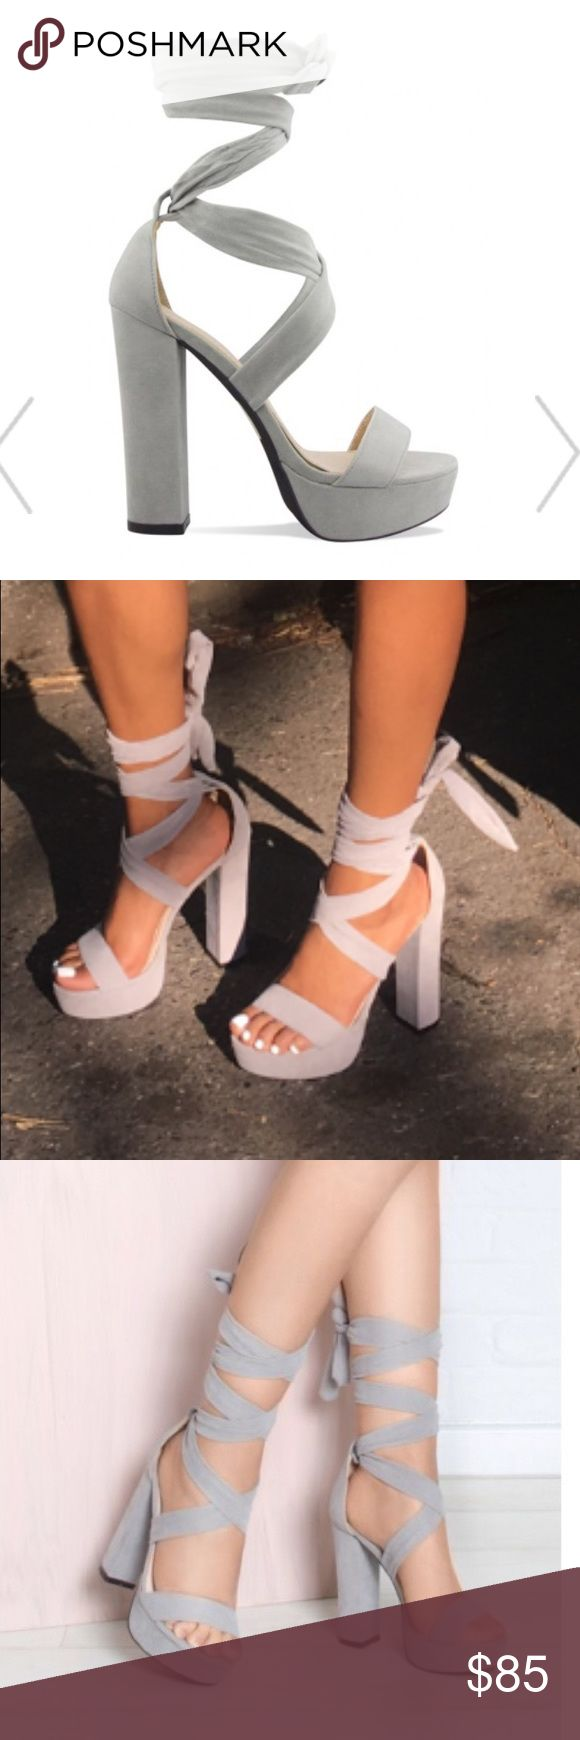 Grey tie up open toe heels Worn only ONCE!!!! grey high thick heel open toe tie up heels! only reason I'm selling these is because they are to big. Make a offer please! Shoes Heels